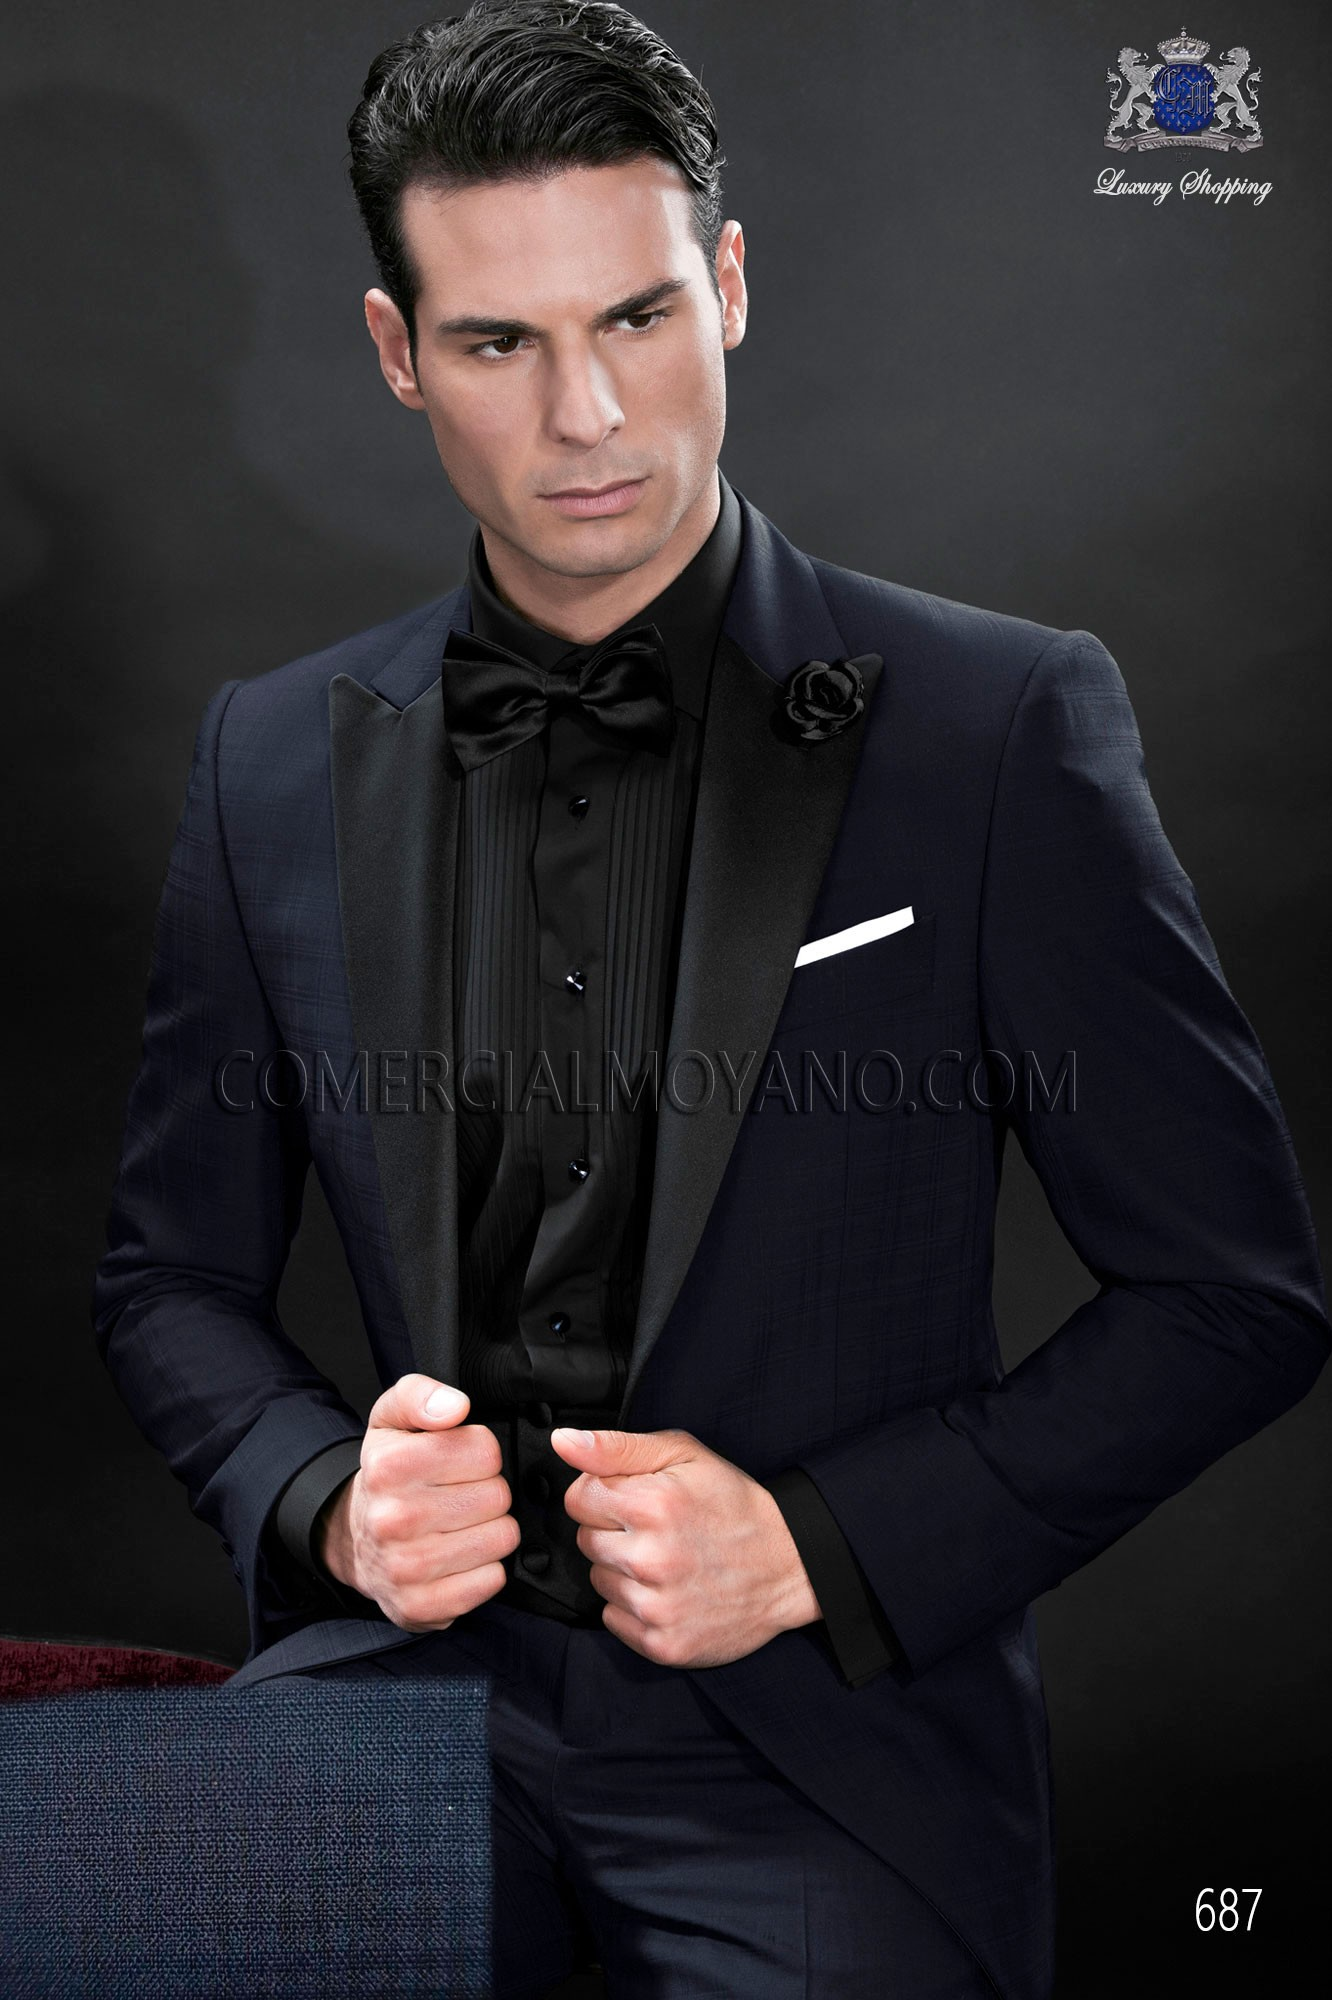 Black Tie blue men wedding suit model 687 Ottavio Nuccio Gala